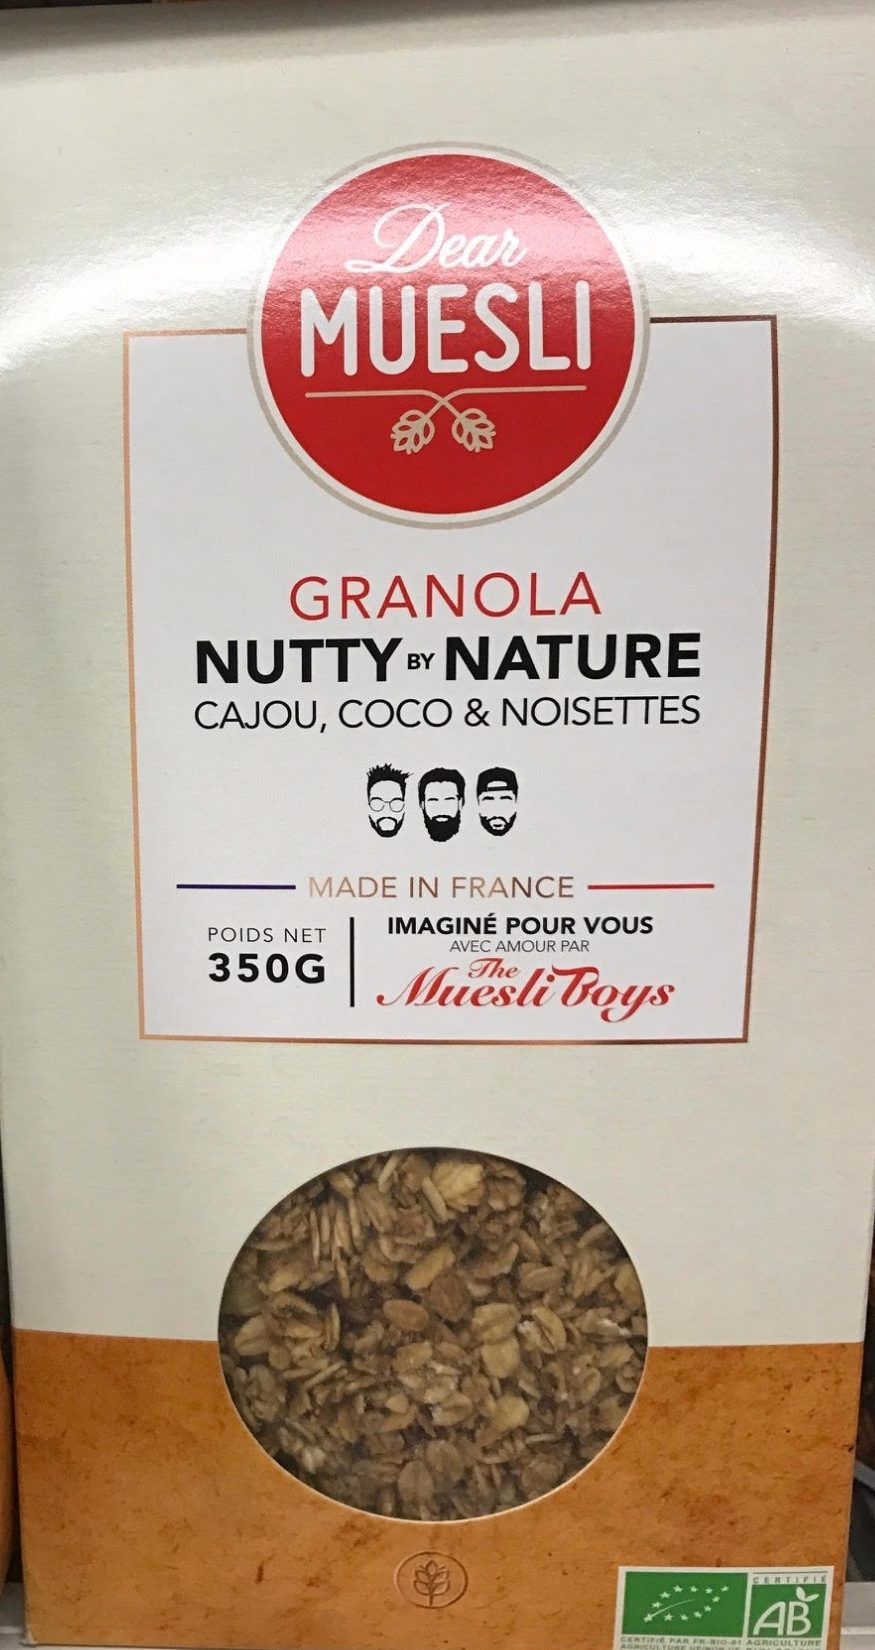 Granola Nutty by Nature - Cajou, Coco & Noisettes - Product